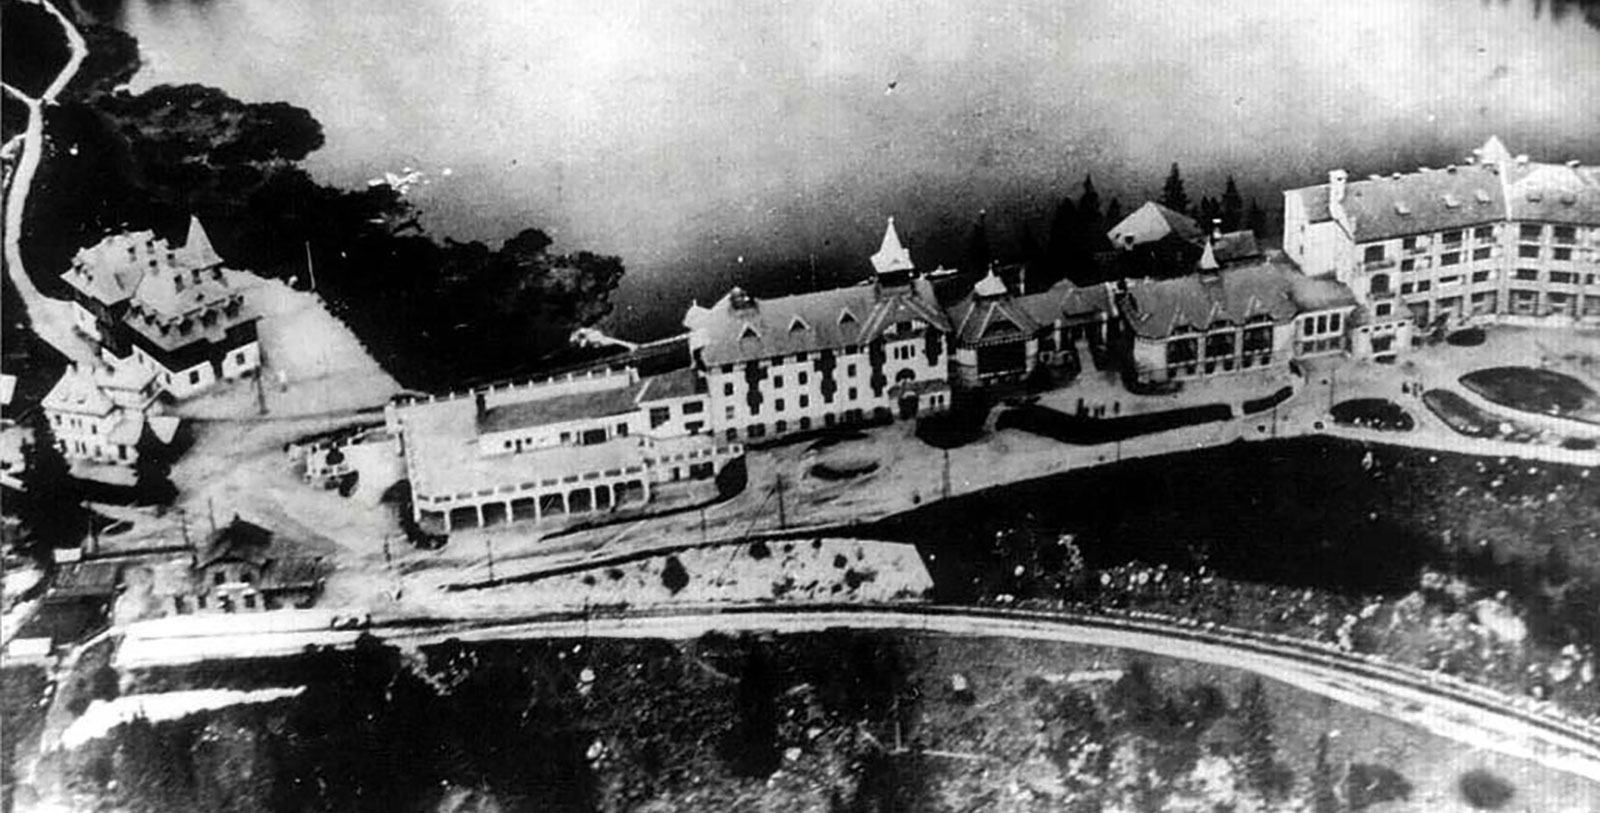 Image of Historic Aerial View, Grand Hotel Kempinski High Tatras, Strbske Pleso, Slovakia, 1893, Member of Historic Hotels Worldwide, Discover